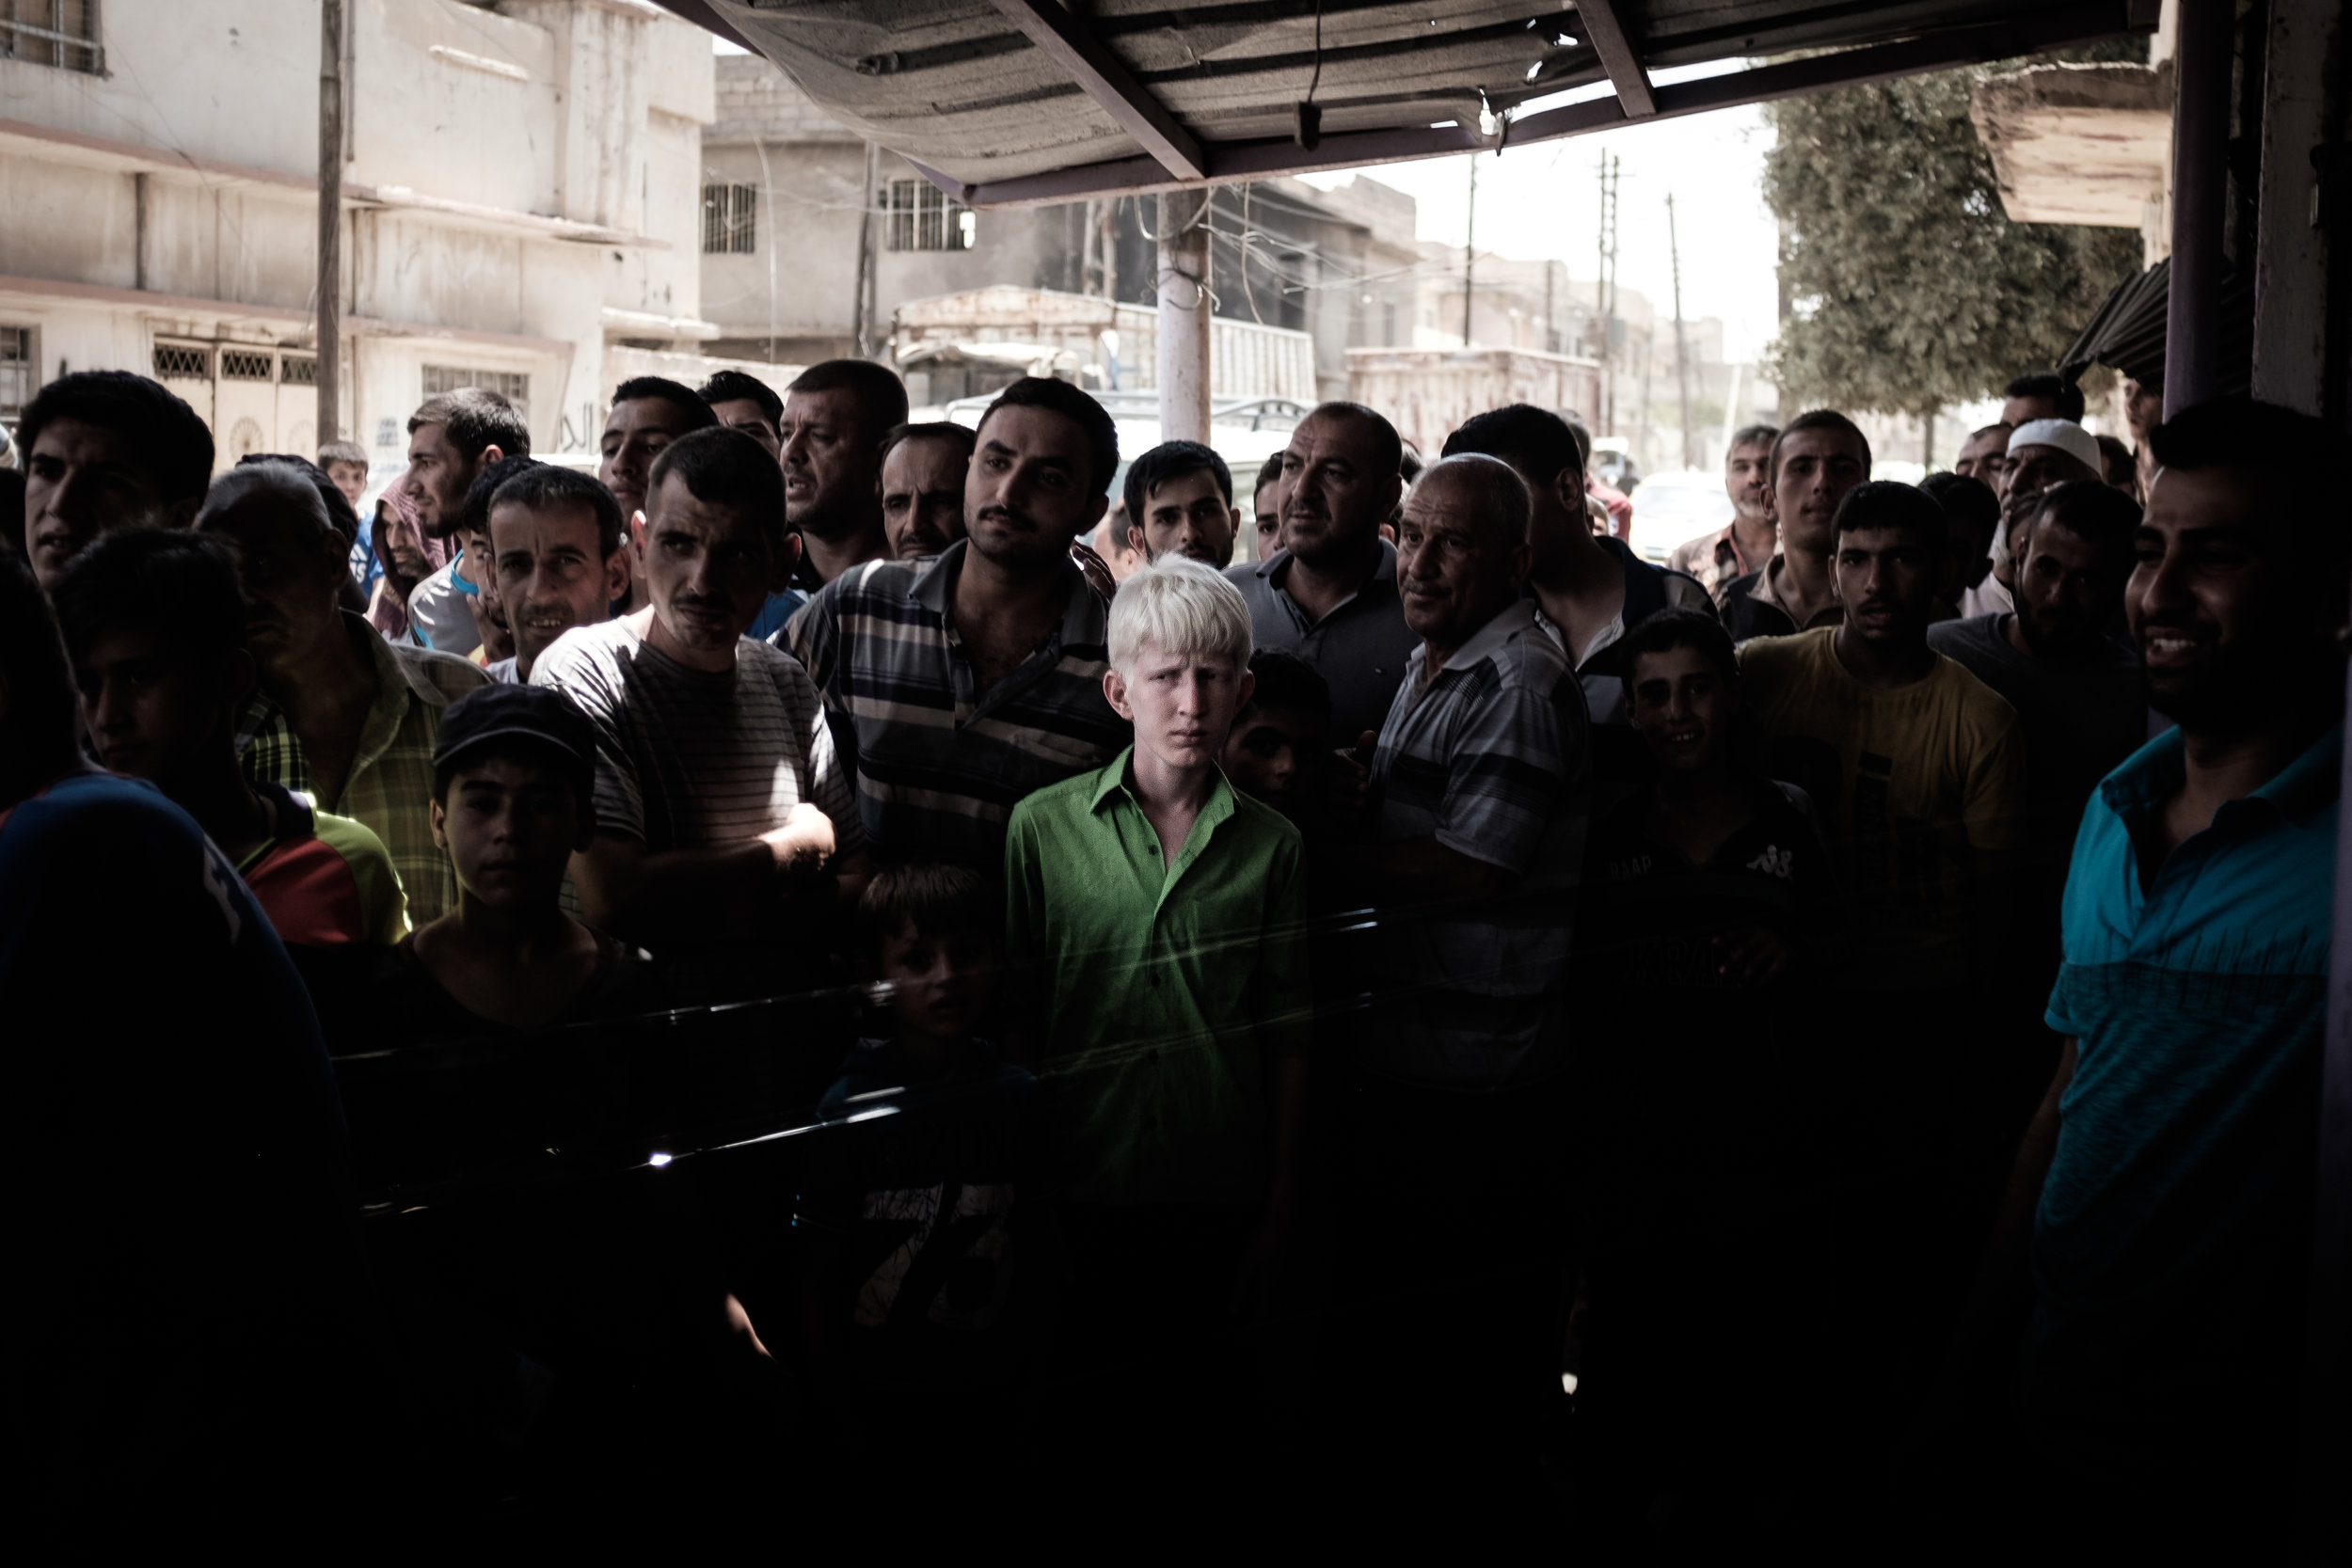 A boy with albinism stands in a crowd of people from his neighbourhood in West Mosul awaiting aid distribution from a local NGO. Since the fighting pushed through the area and into the Old City, this was the first humanitarian aid convoy to arrive in the area in a number of weeks.